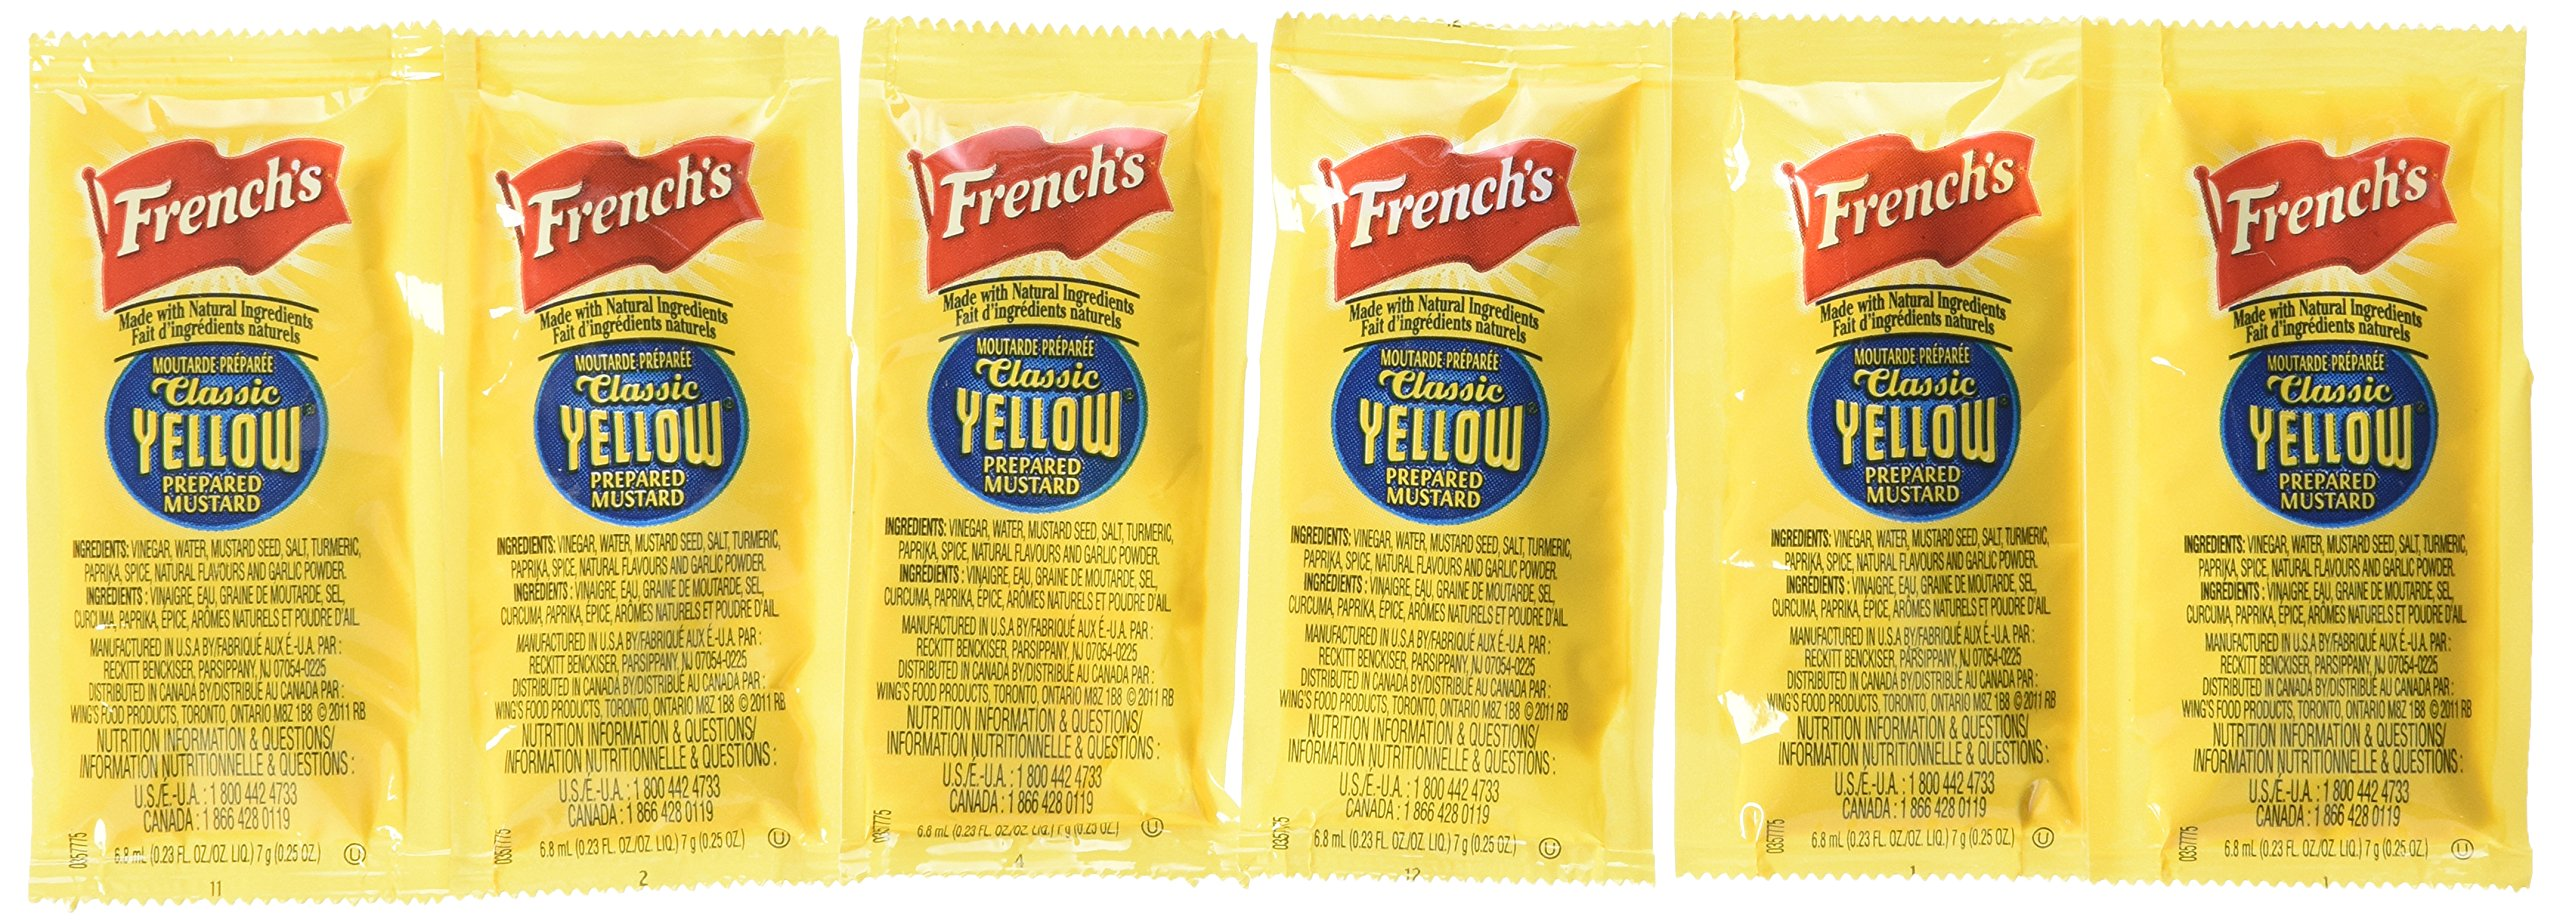 French's Classic Yellow Mustard Packets - Case of 500 by French's